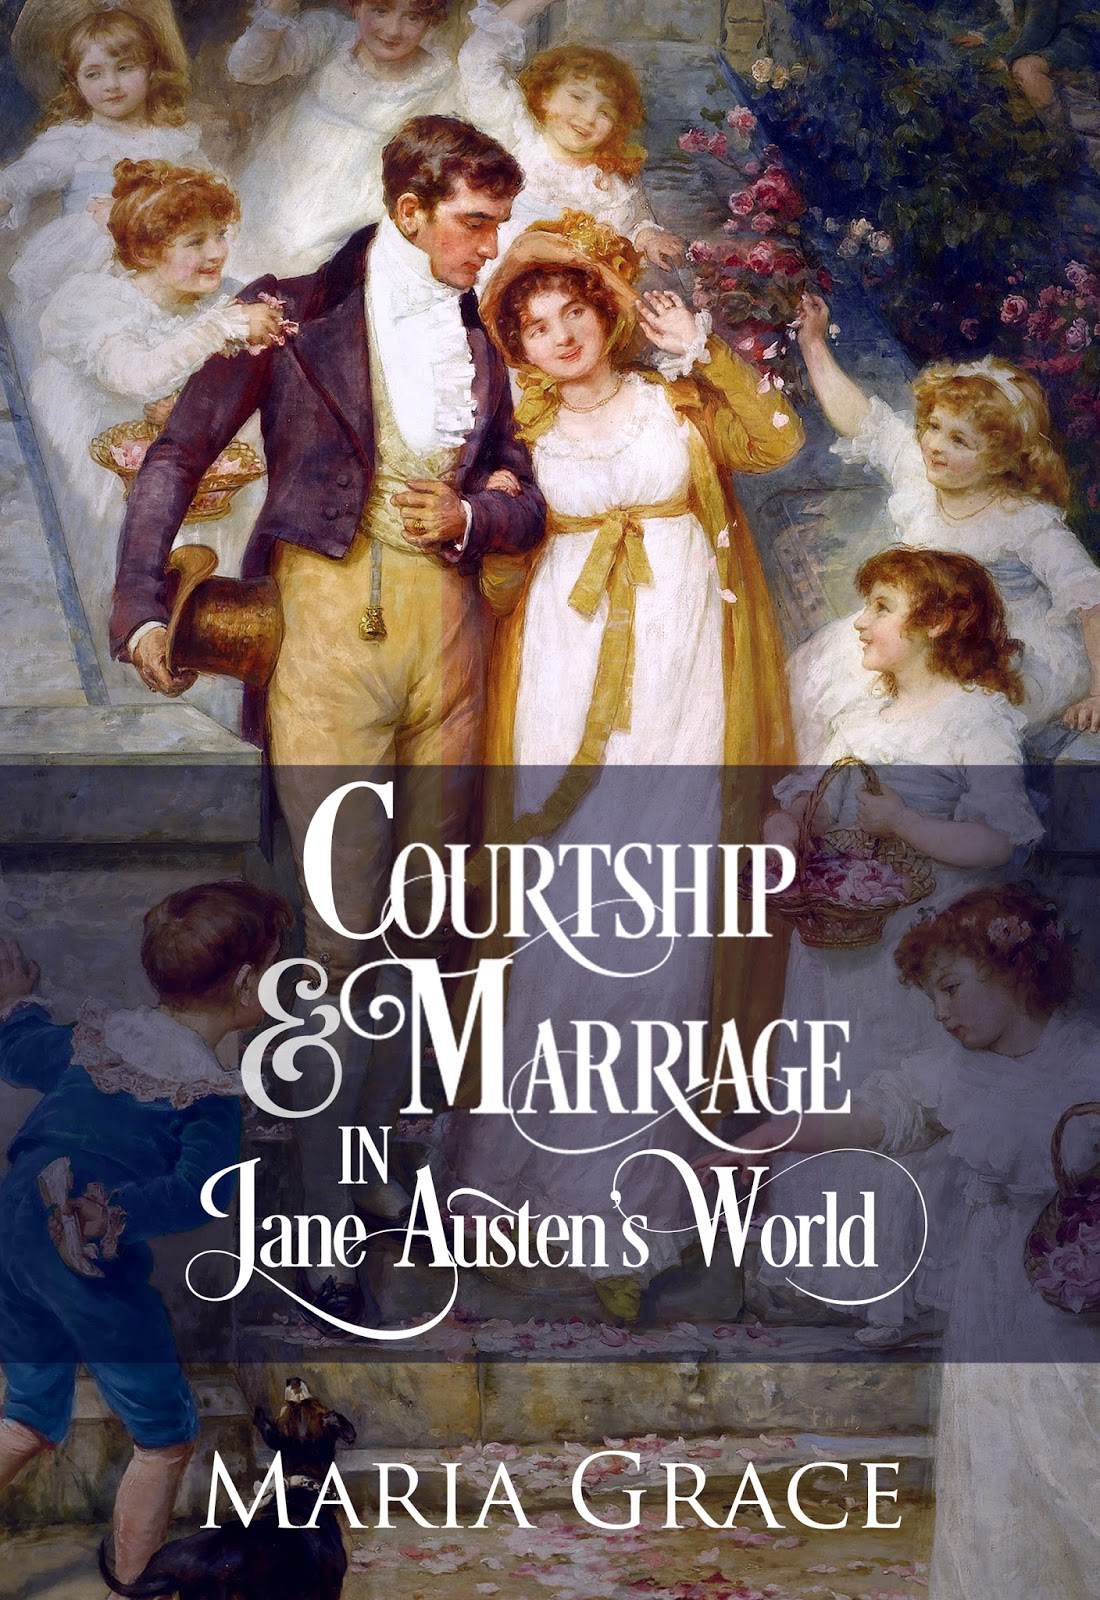 marriage in jane austen's view M arriage is the central theme and conclusion of jane austen's novels but marriage in regency england was a very different institution from what it is here and now, in large part because of changes in the law relating to marriage.